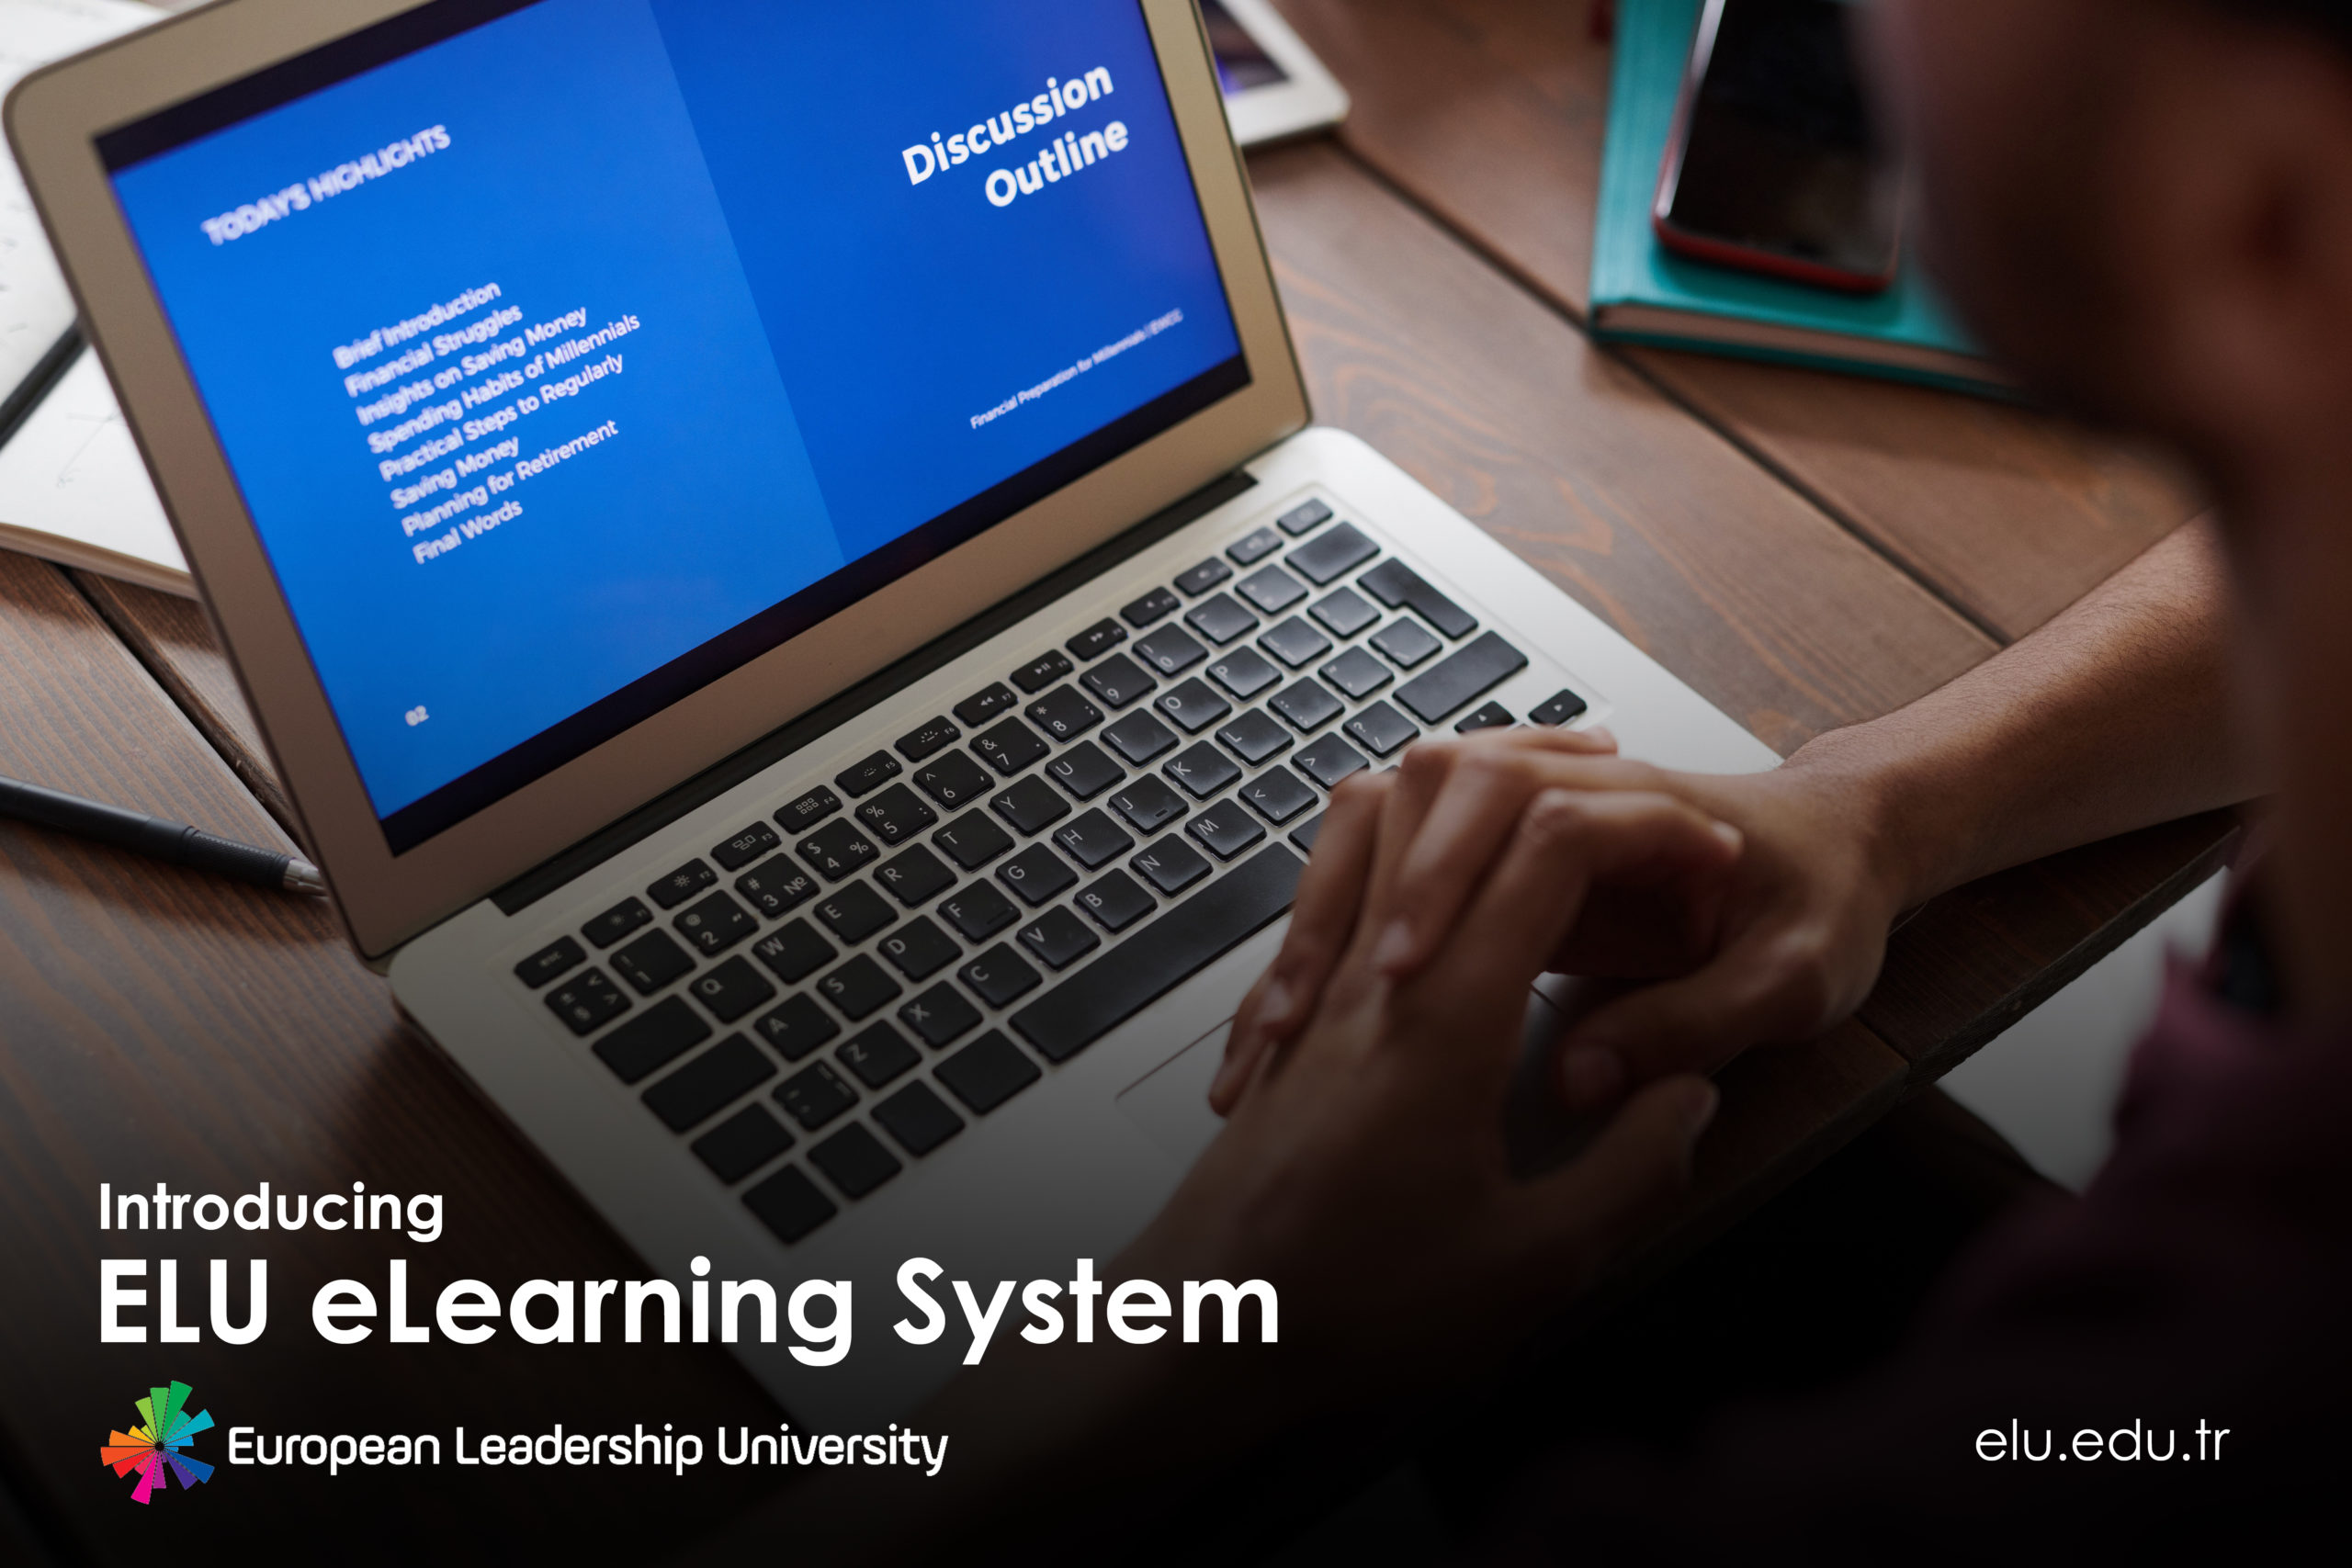 European Leadership University's Supportive Learning System